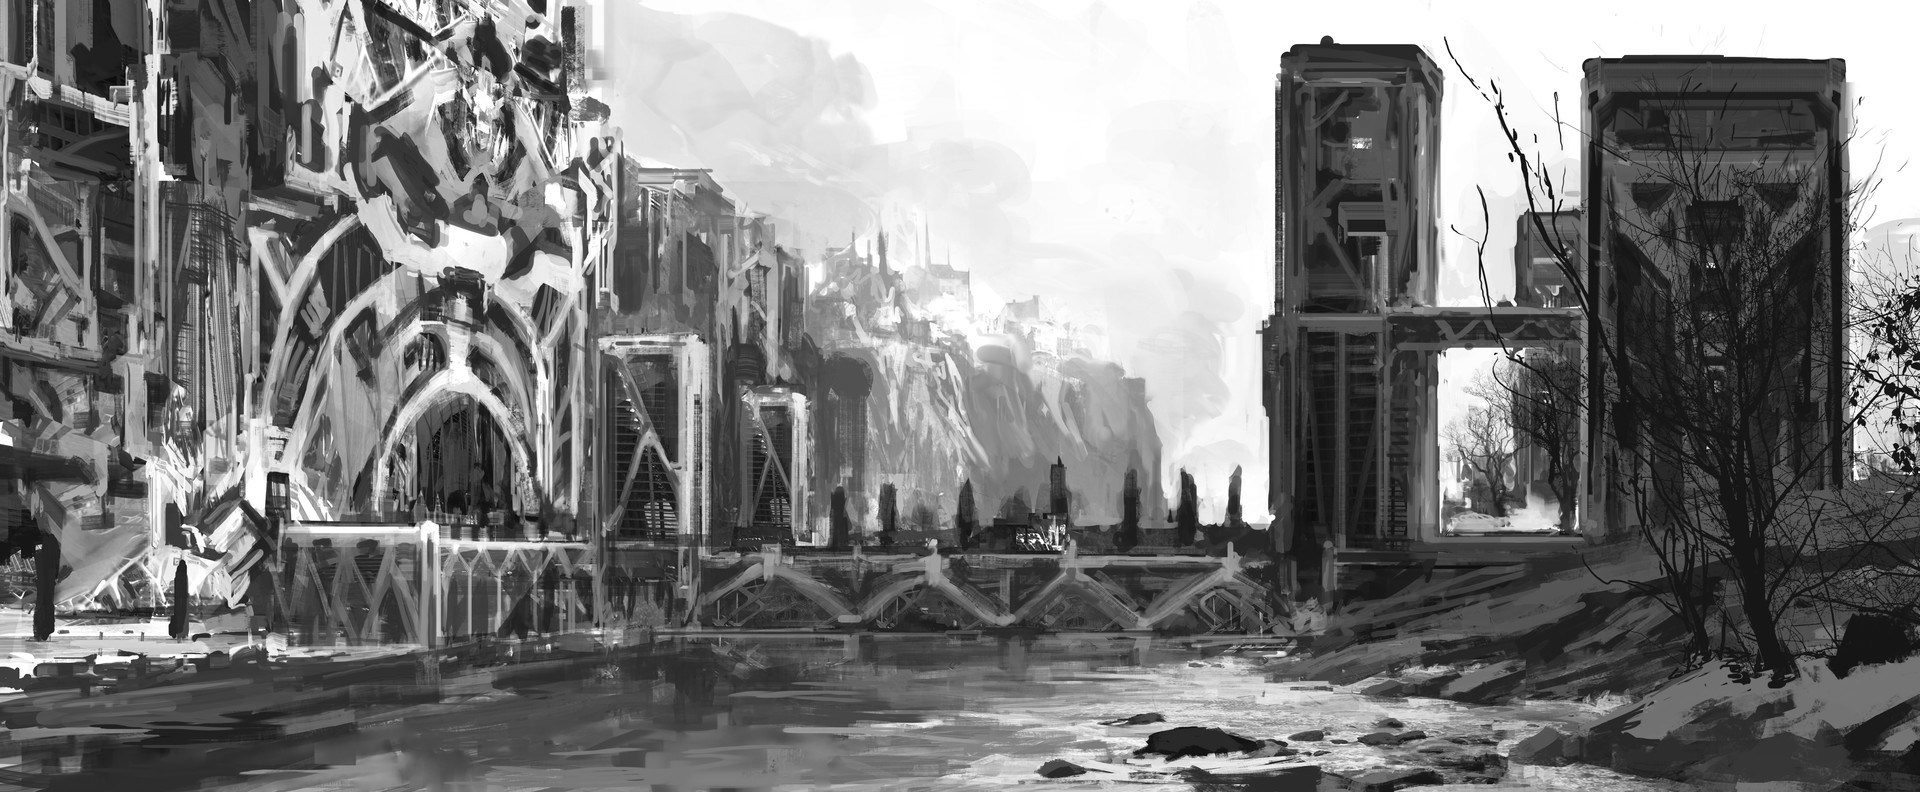 Wojciech bajor relic cathedral city gates mood shot 1